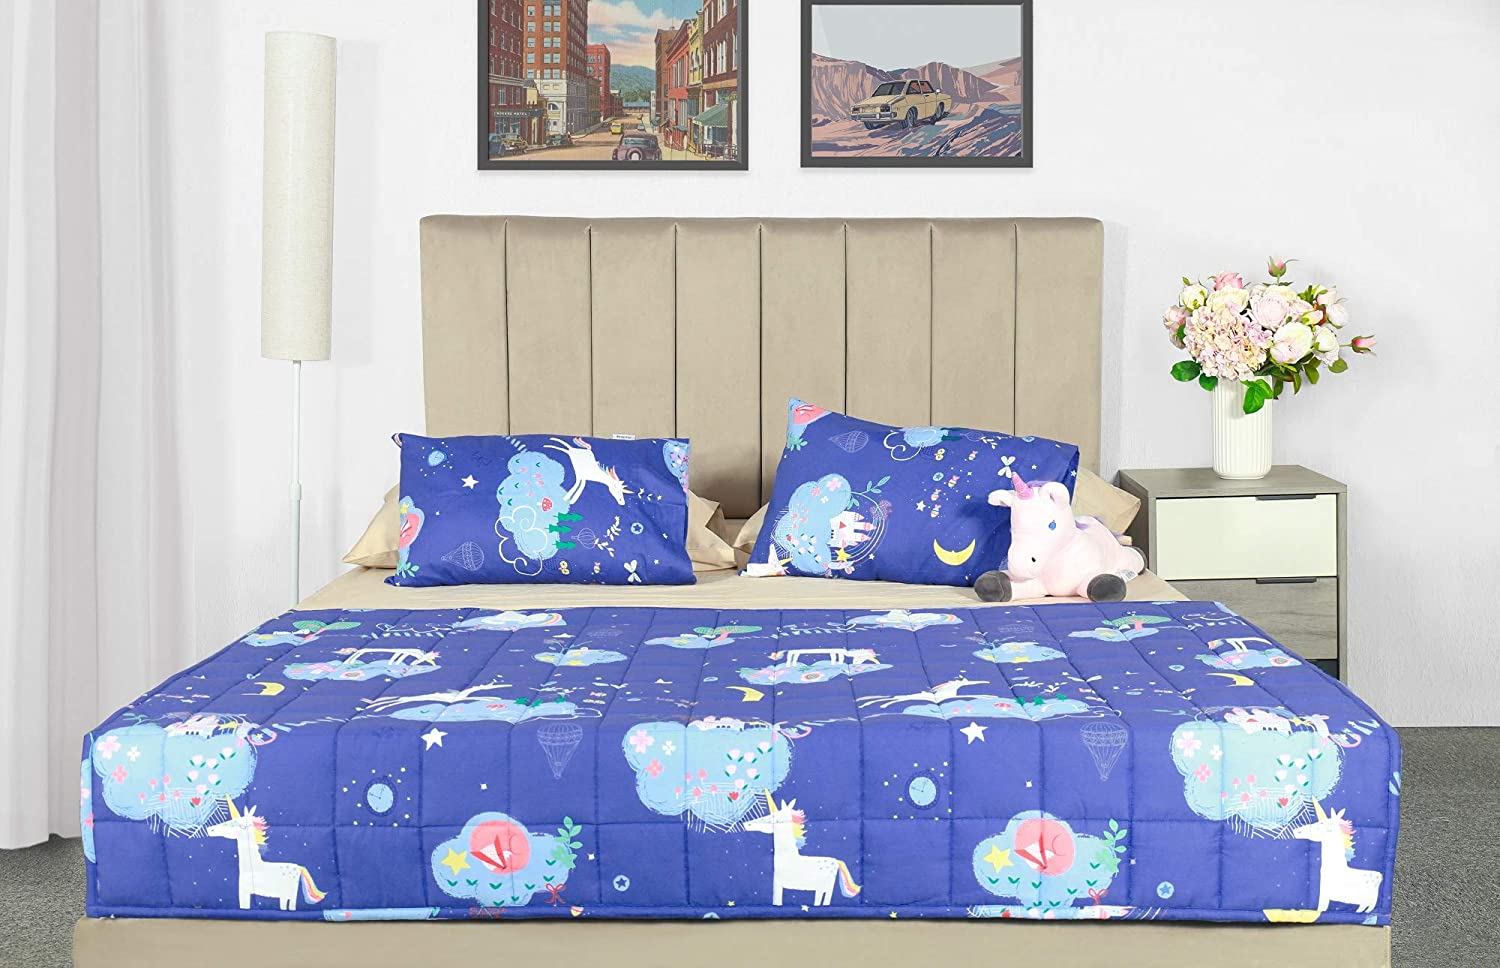 5lbs 600TC Egyptian Cotton Weighted Blanket for Reading with Glass Beads White Dinosaur Joyching Weighted Lap Pad for Kids 20 x 30 inches